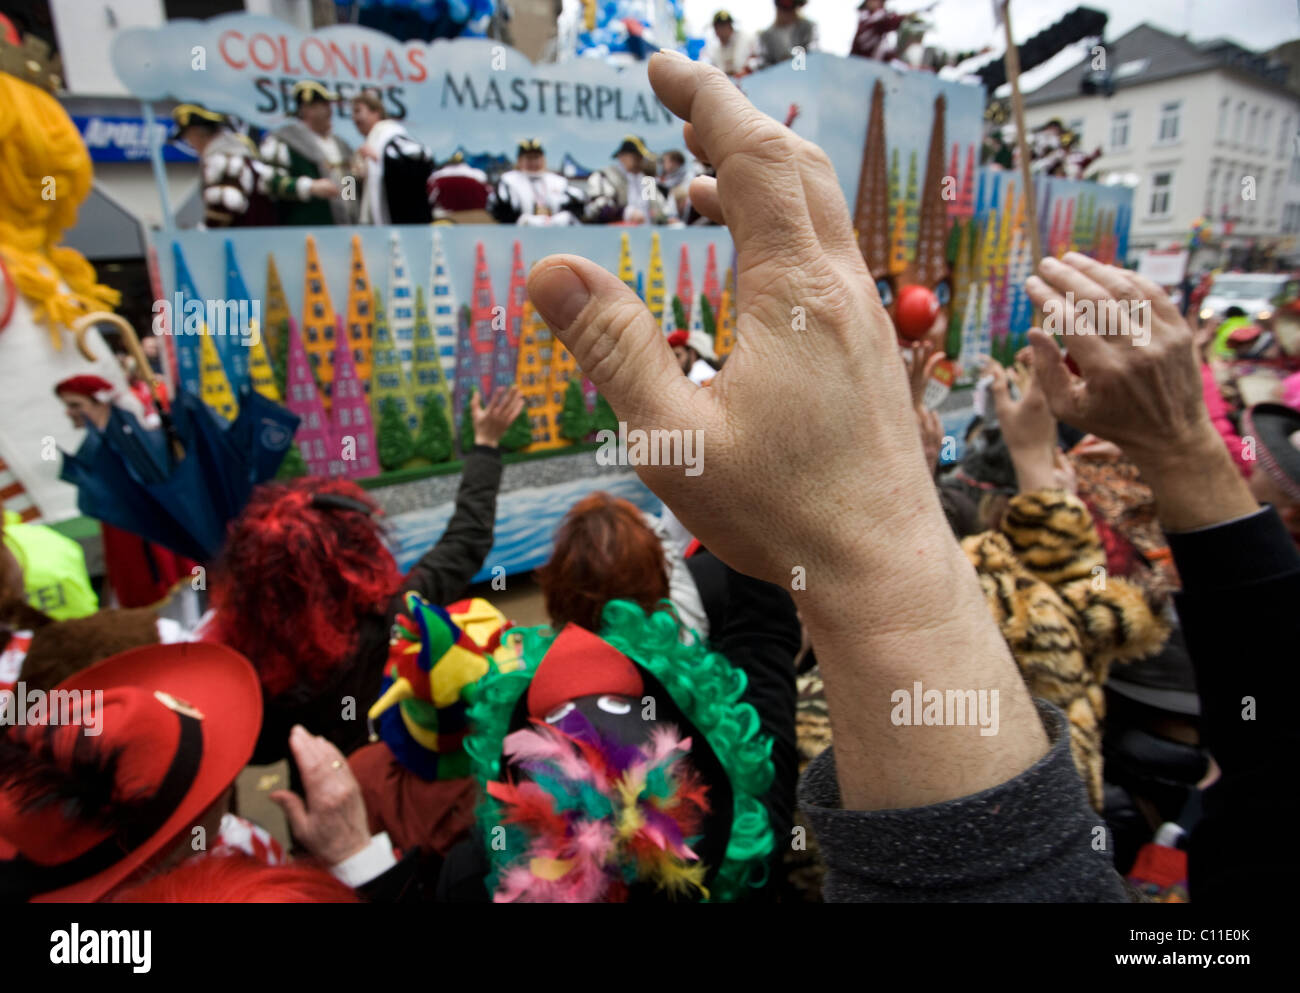 Hands coming out of the crowd to pick up sweets and chocolates thrown at the carnival parade in the streets of Cologne. - Stock Image